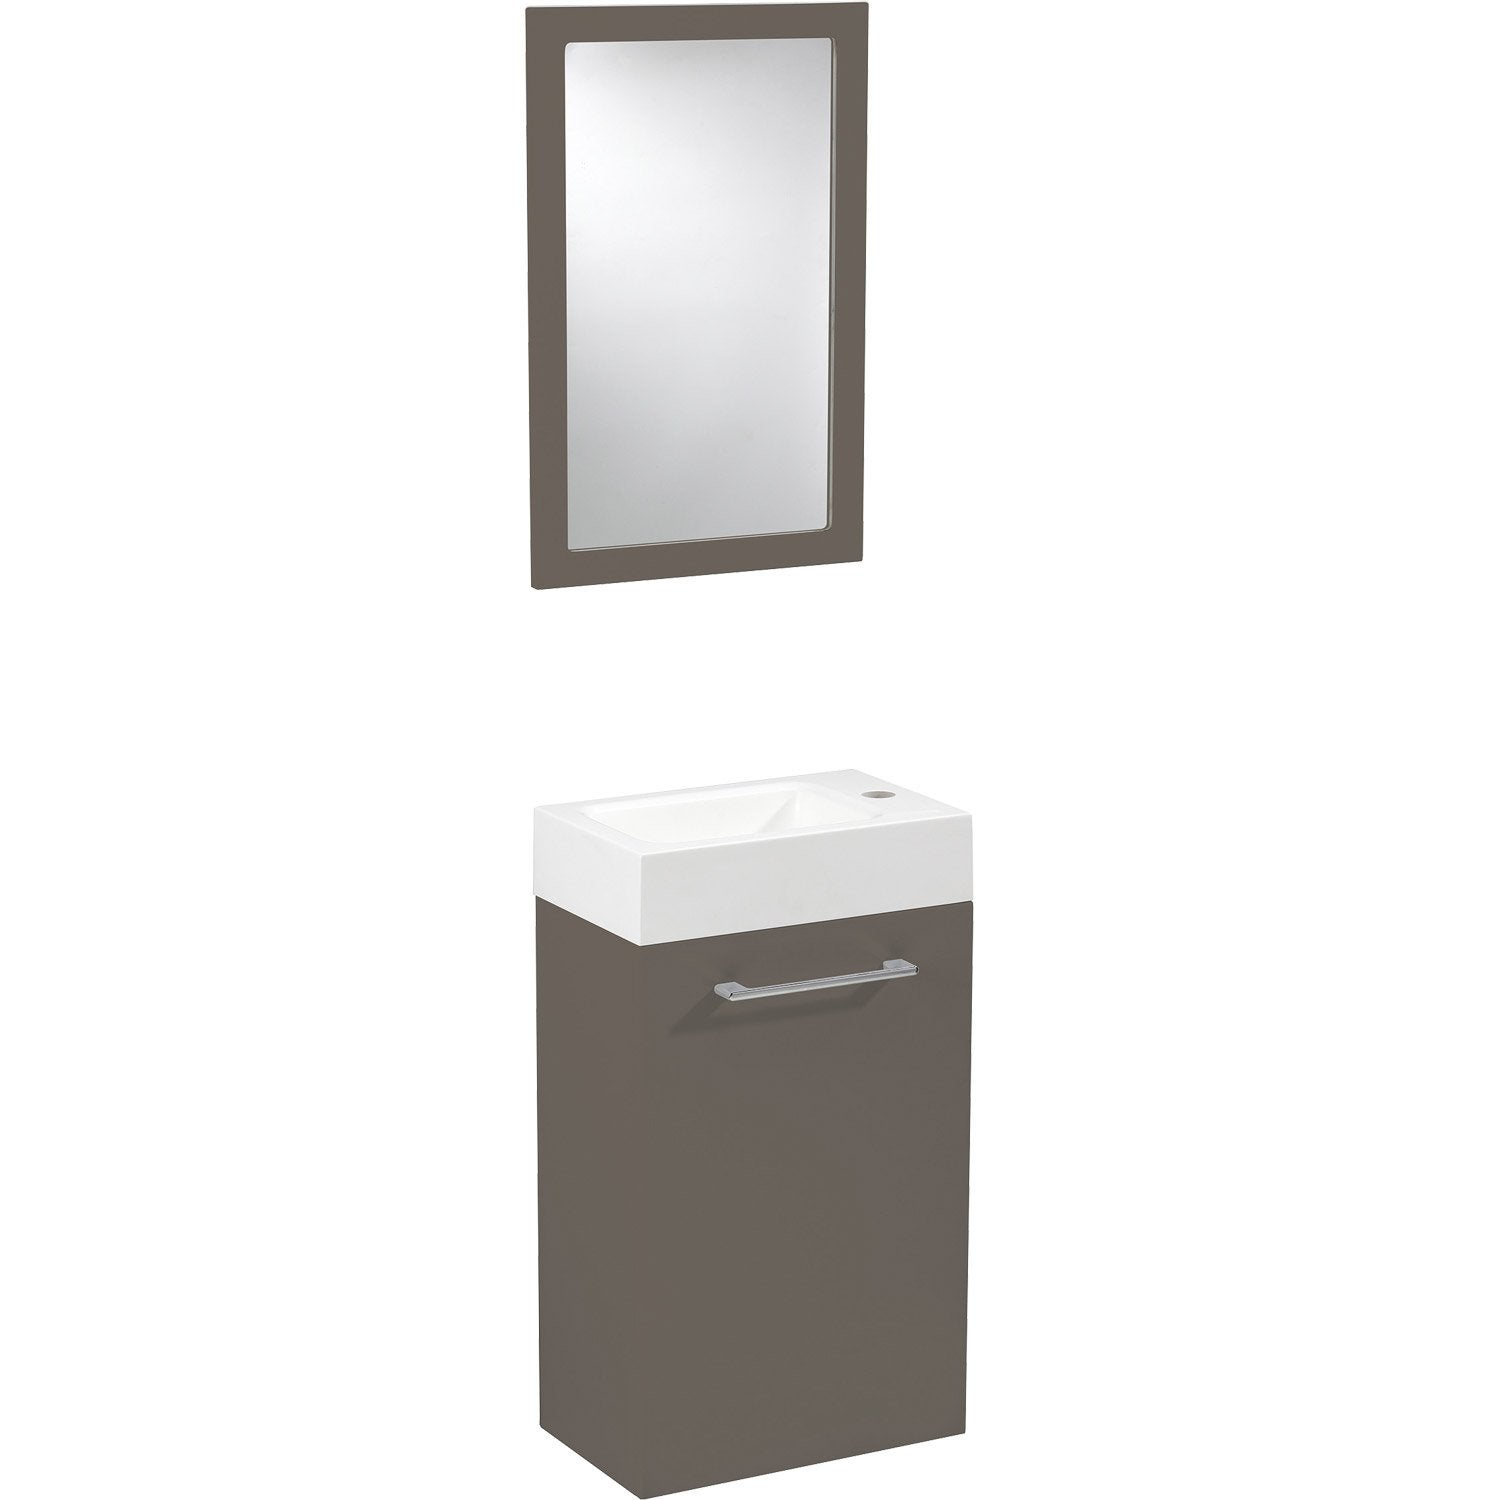 Meuble lave mains avec miroir brun taupe n 3 sensea remix for Mobile remix leroy merlin